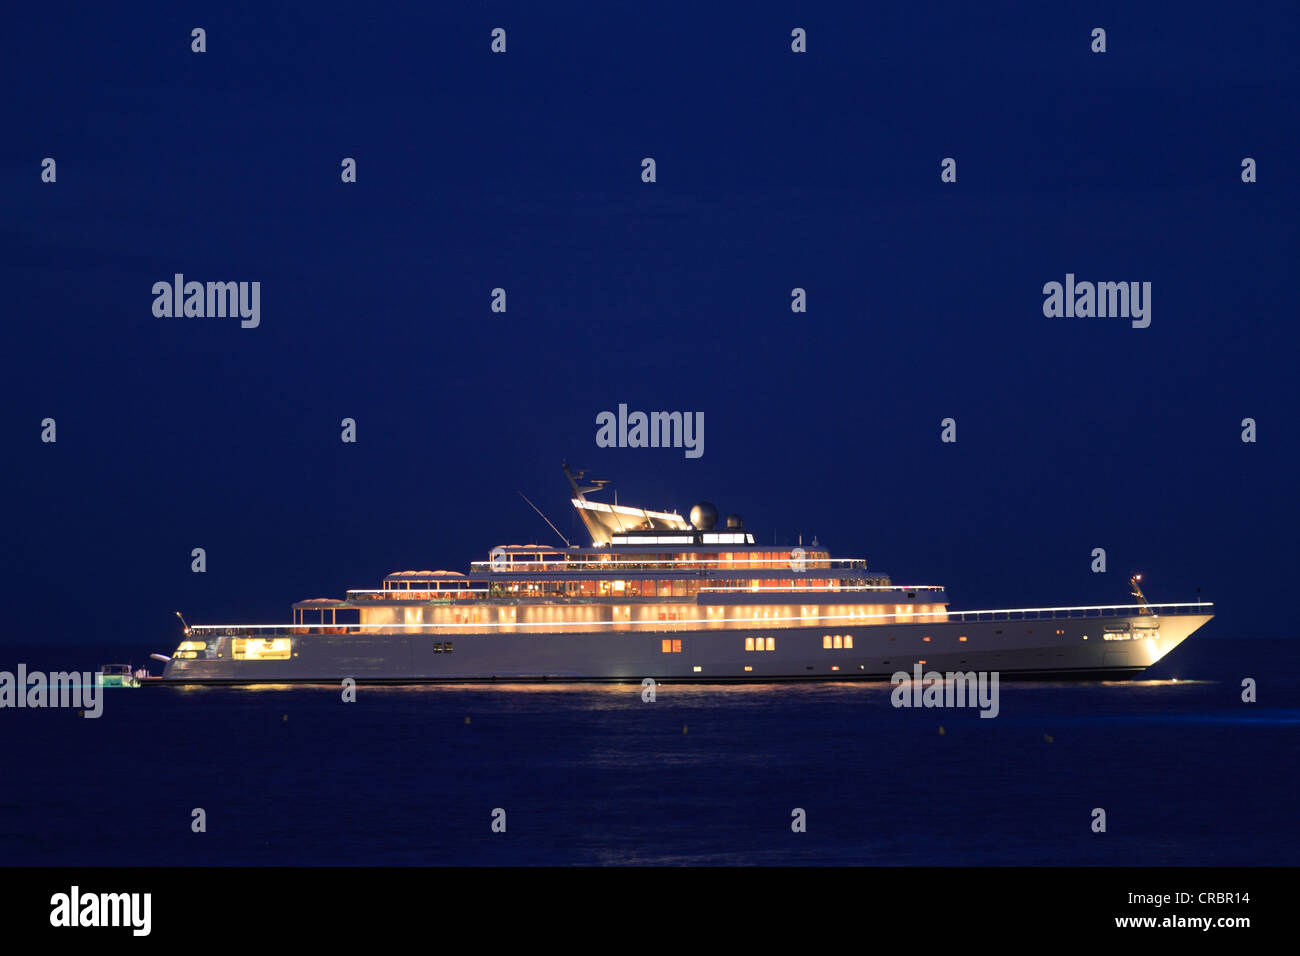 Motor yacht 'Rising Sun', 138m, at night, built by Luersson Yachts in 2004, owned by David Geffen, previously - Stock Image